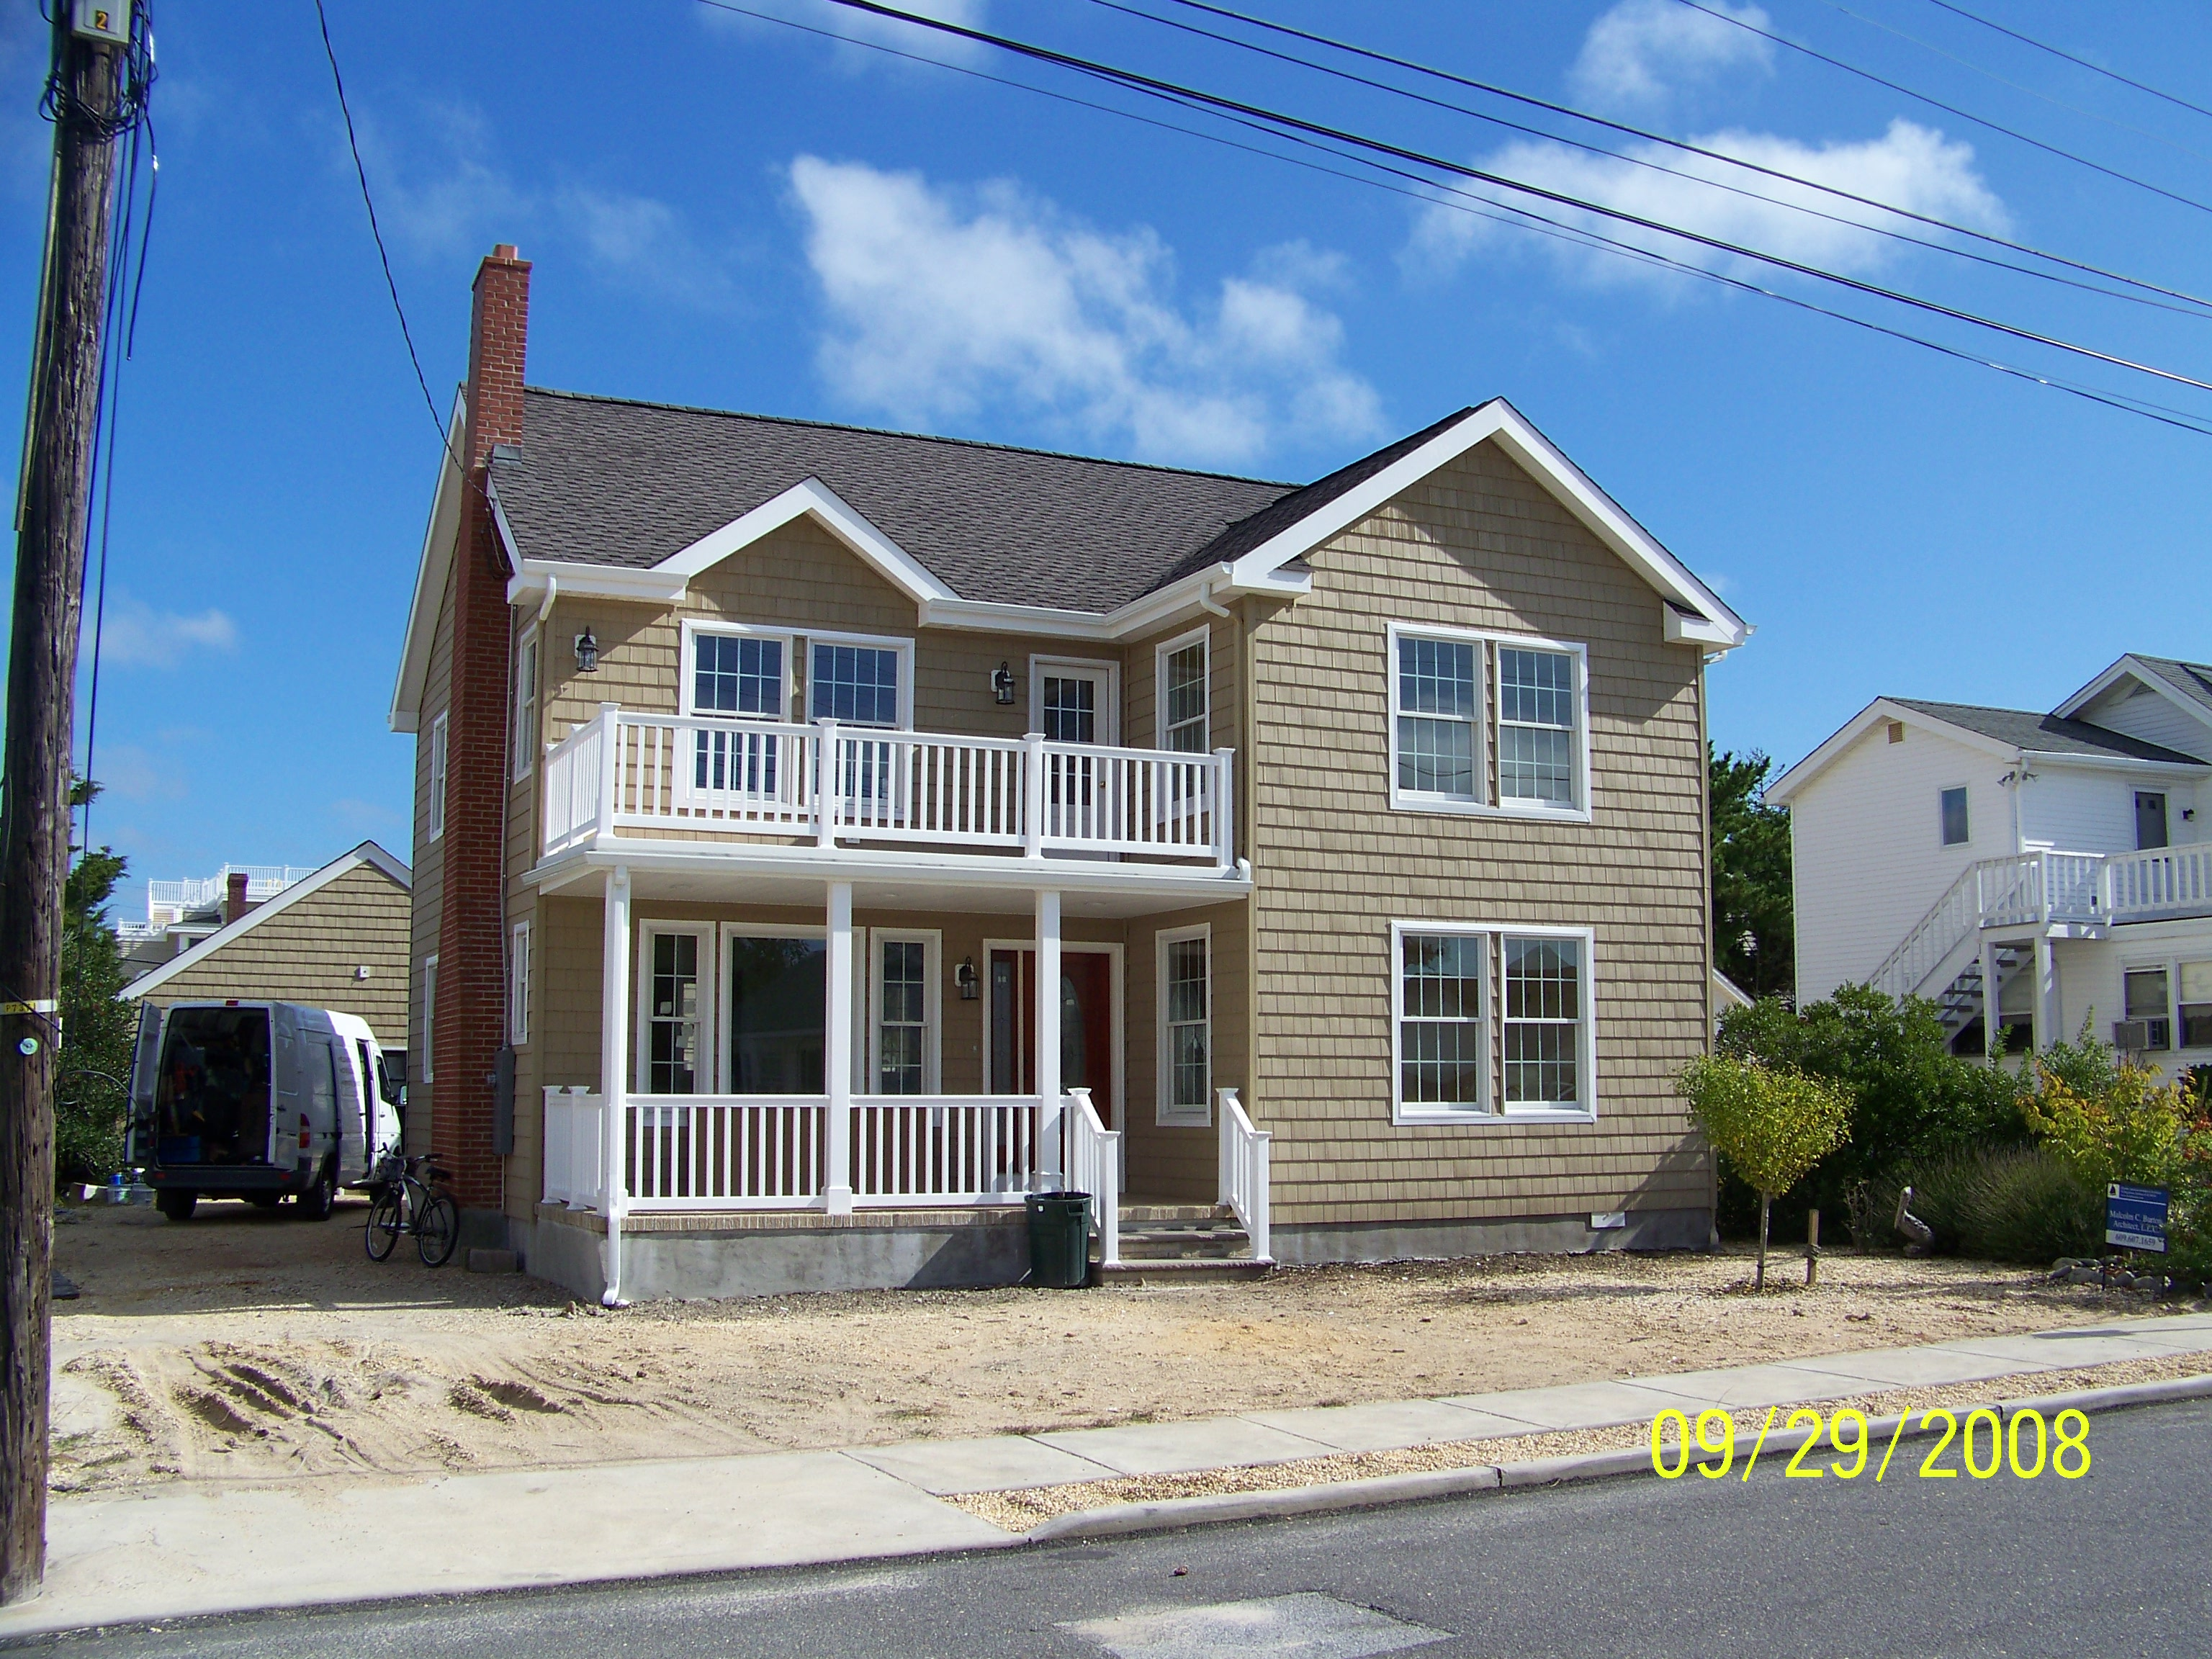 Second story addition brant beach nj jersey shore for Adding a second story